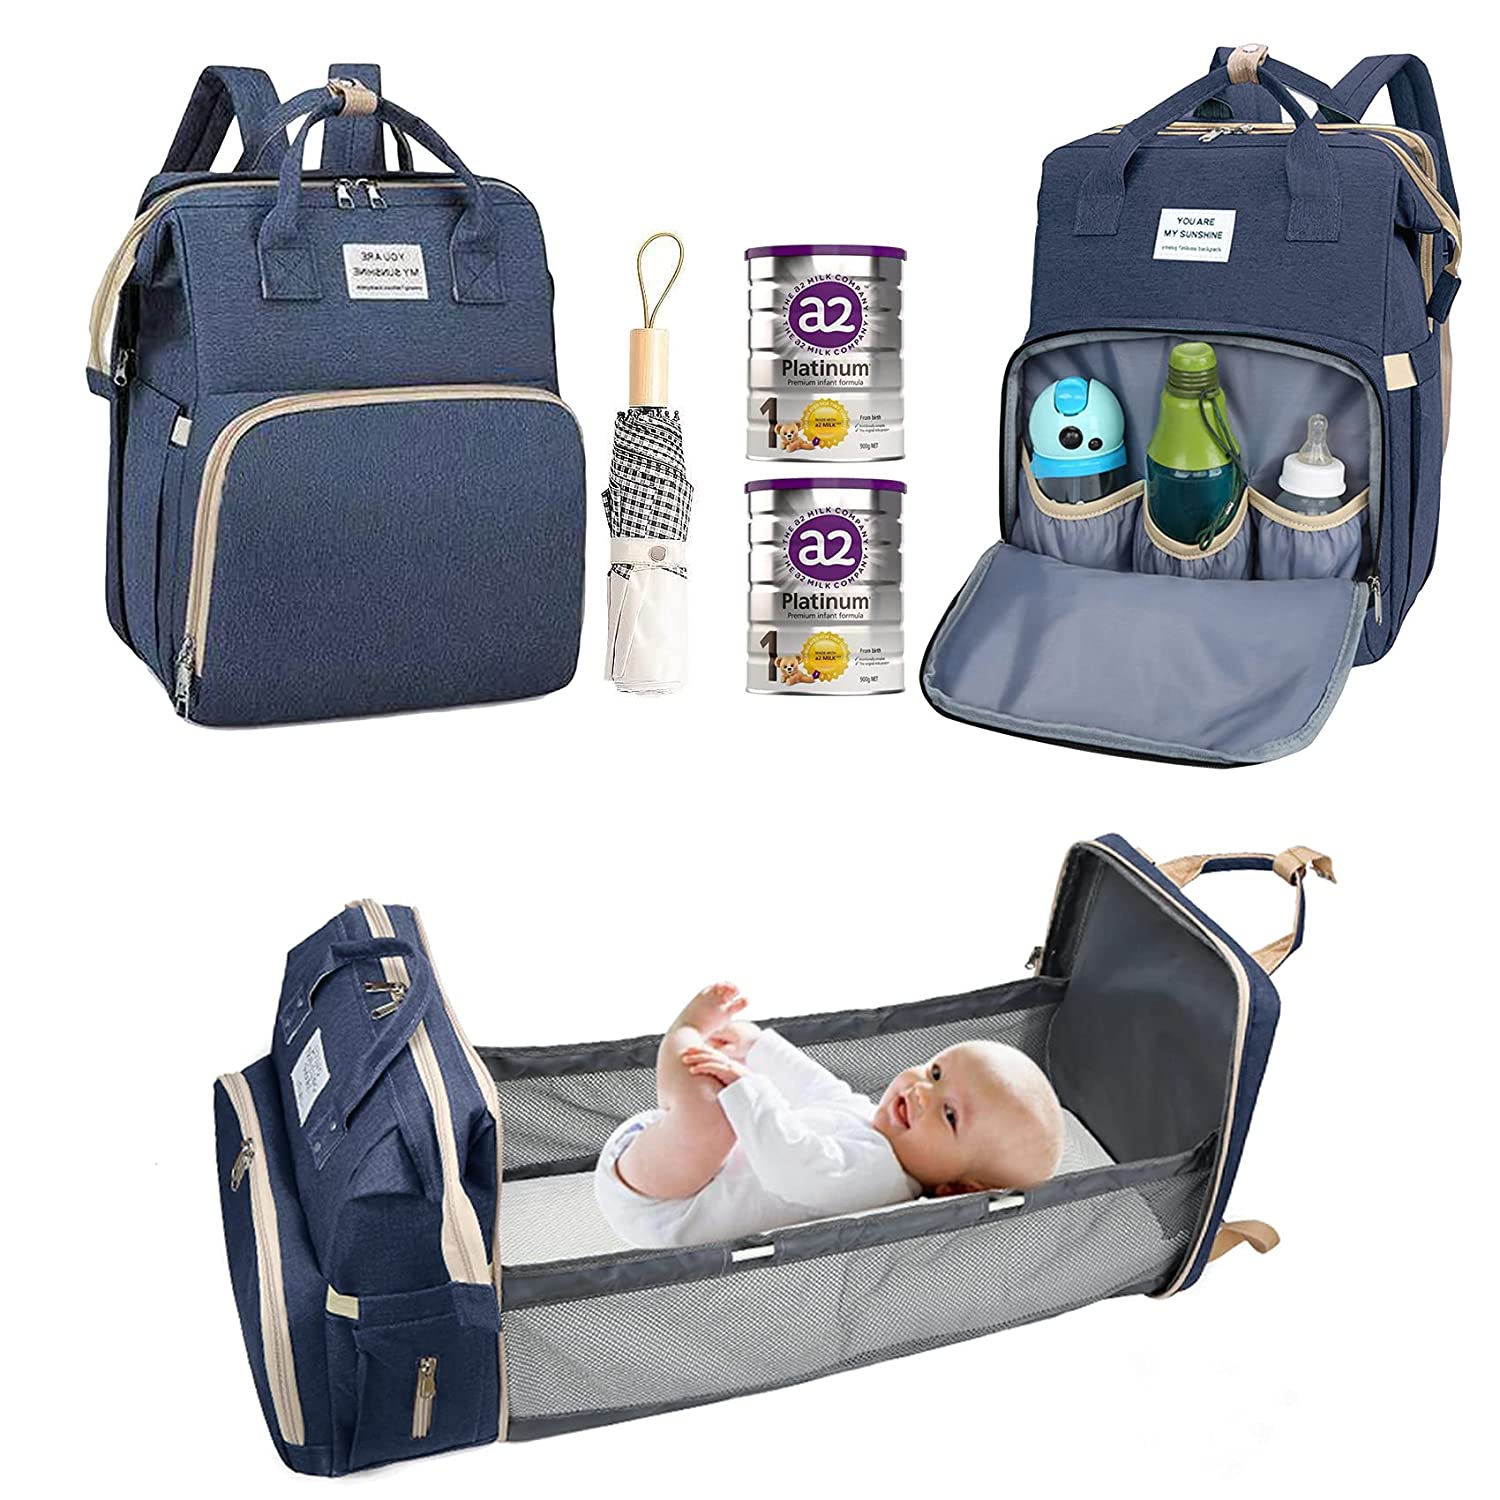 Diaper Bag Backpack with Changing Station, Baby Stuff for Newborn, Travel Portable Baby Essentials, for Baby Boys/Girls, Gifts for Mom and Dad